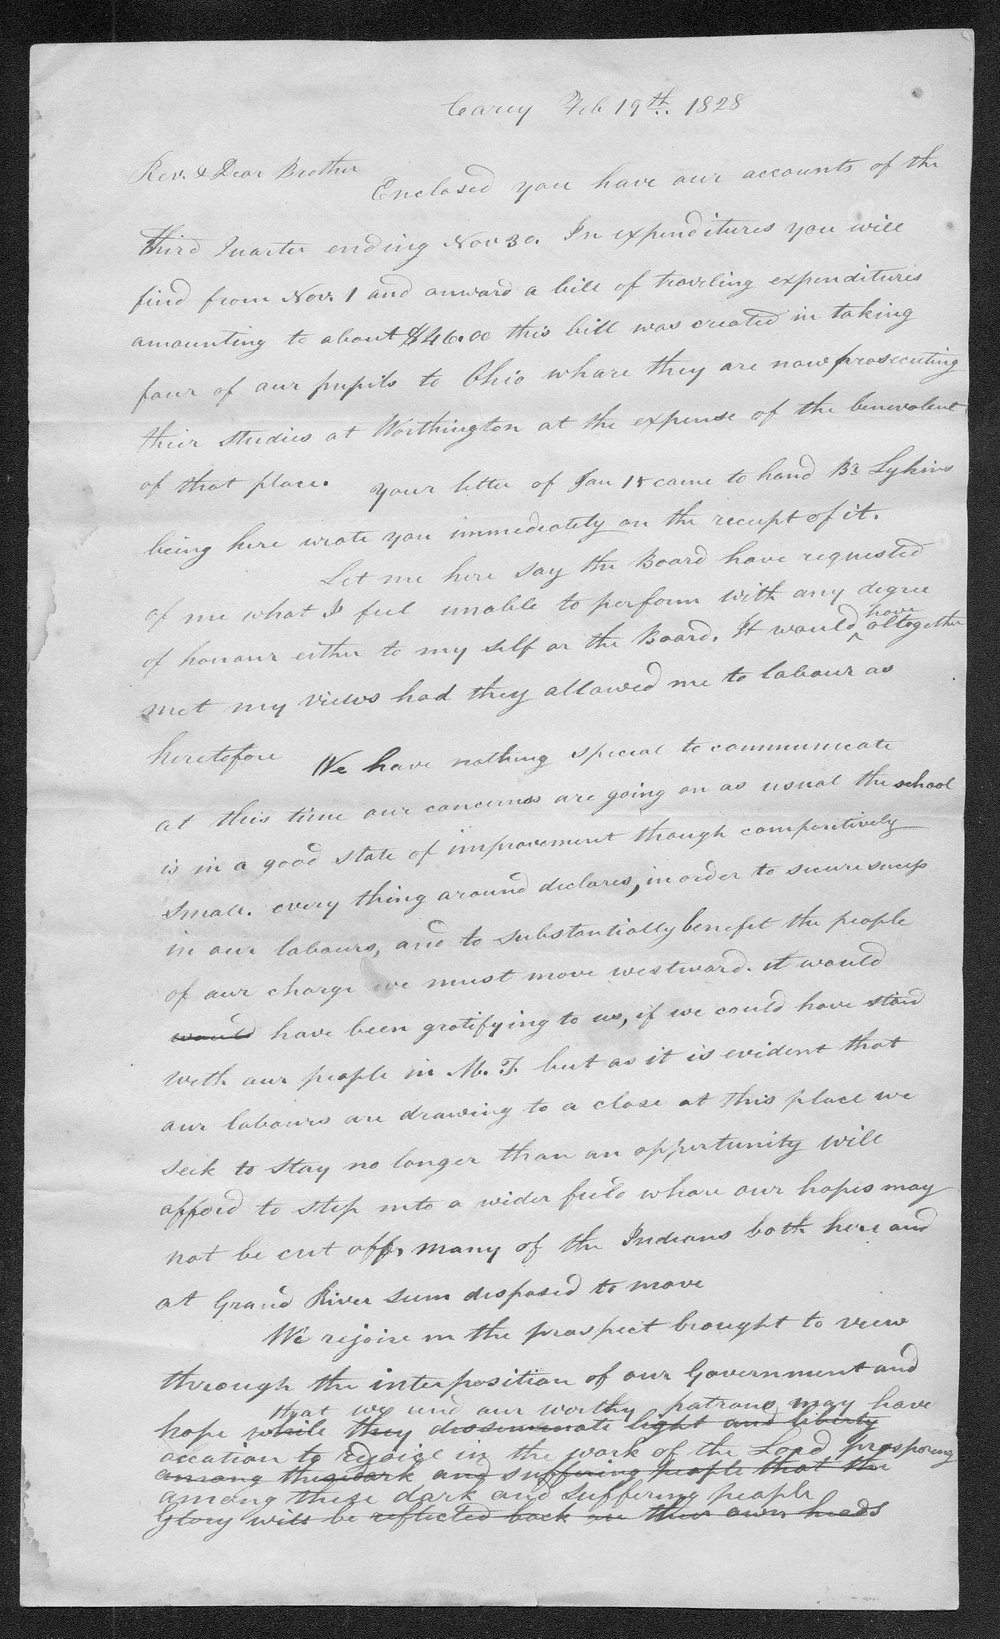 Carey Mission letter, unknown author - 1